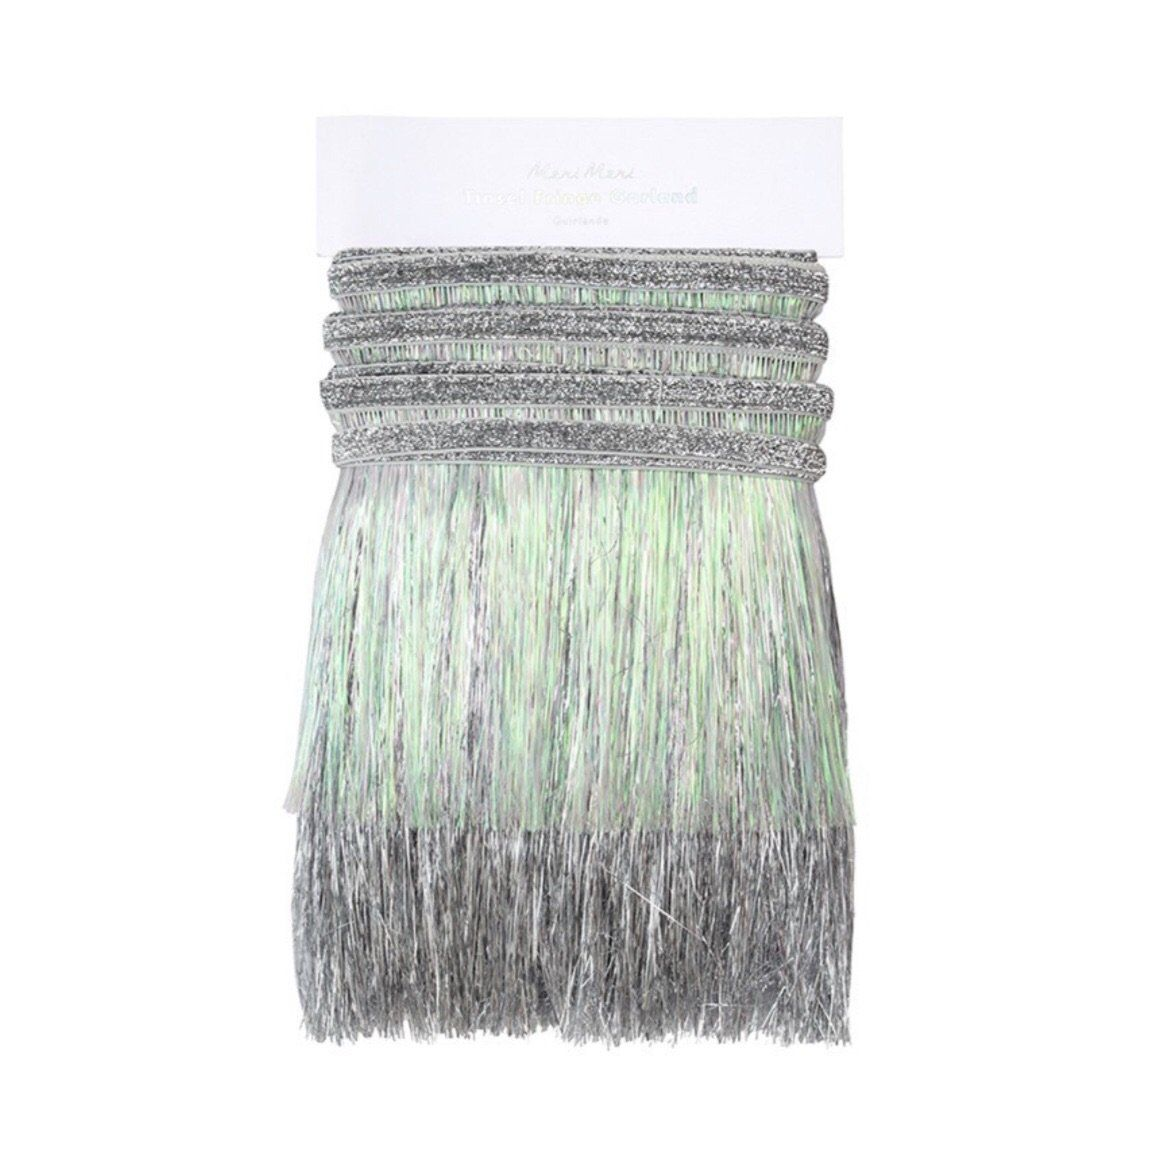 FRINGE GARLAND - SILVER IRIDESCENT, Tassel Garland, Meri meri - Bon + Co. Party Studio